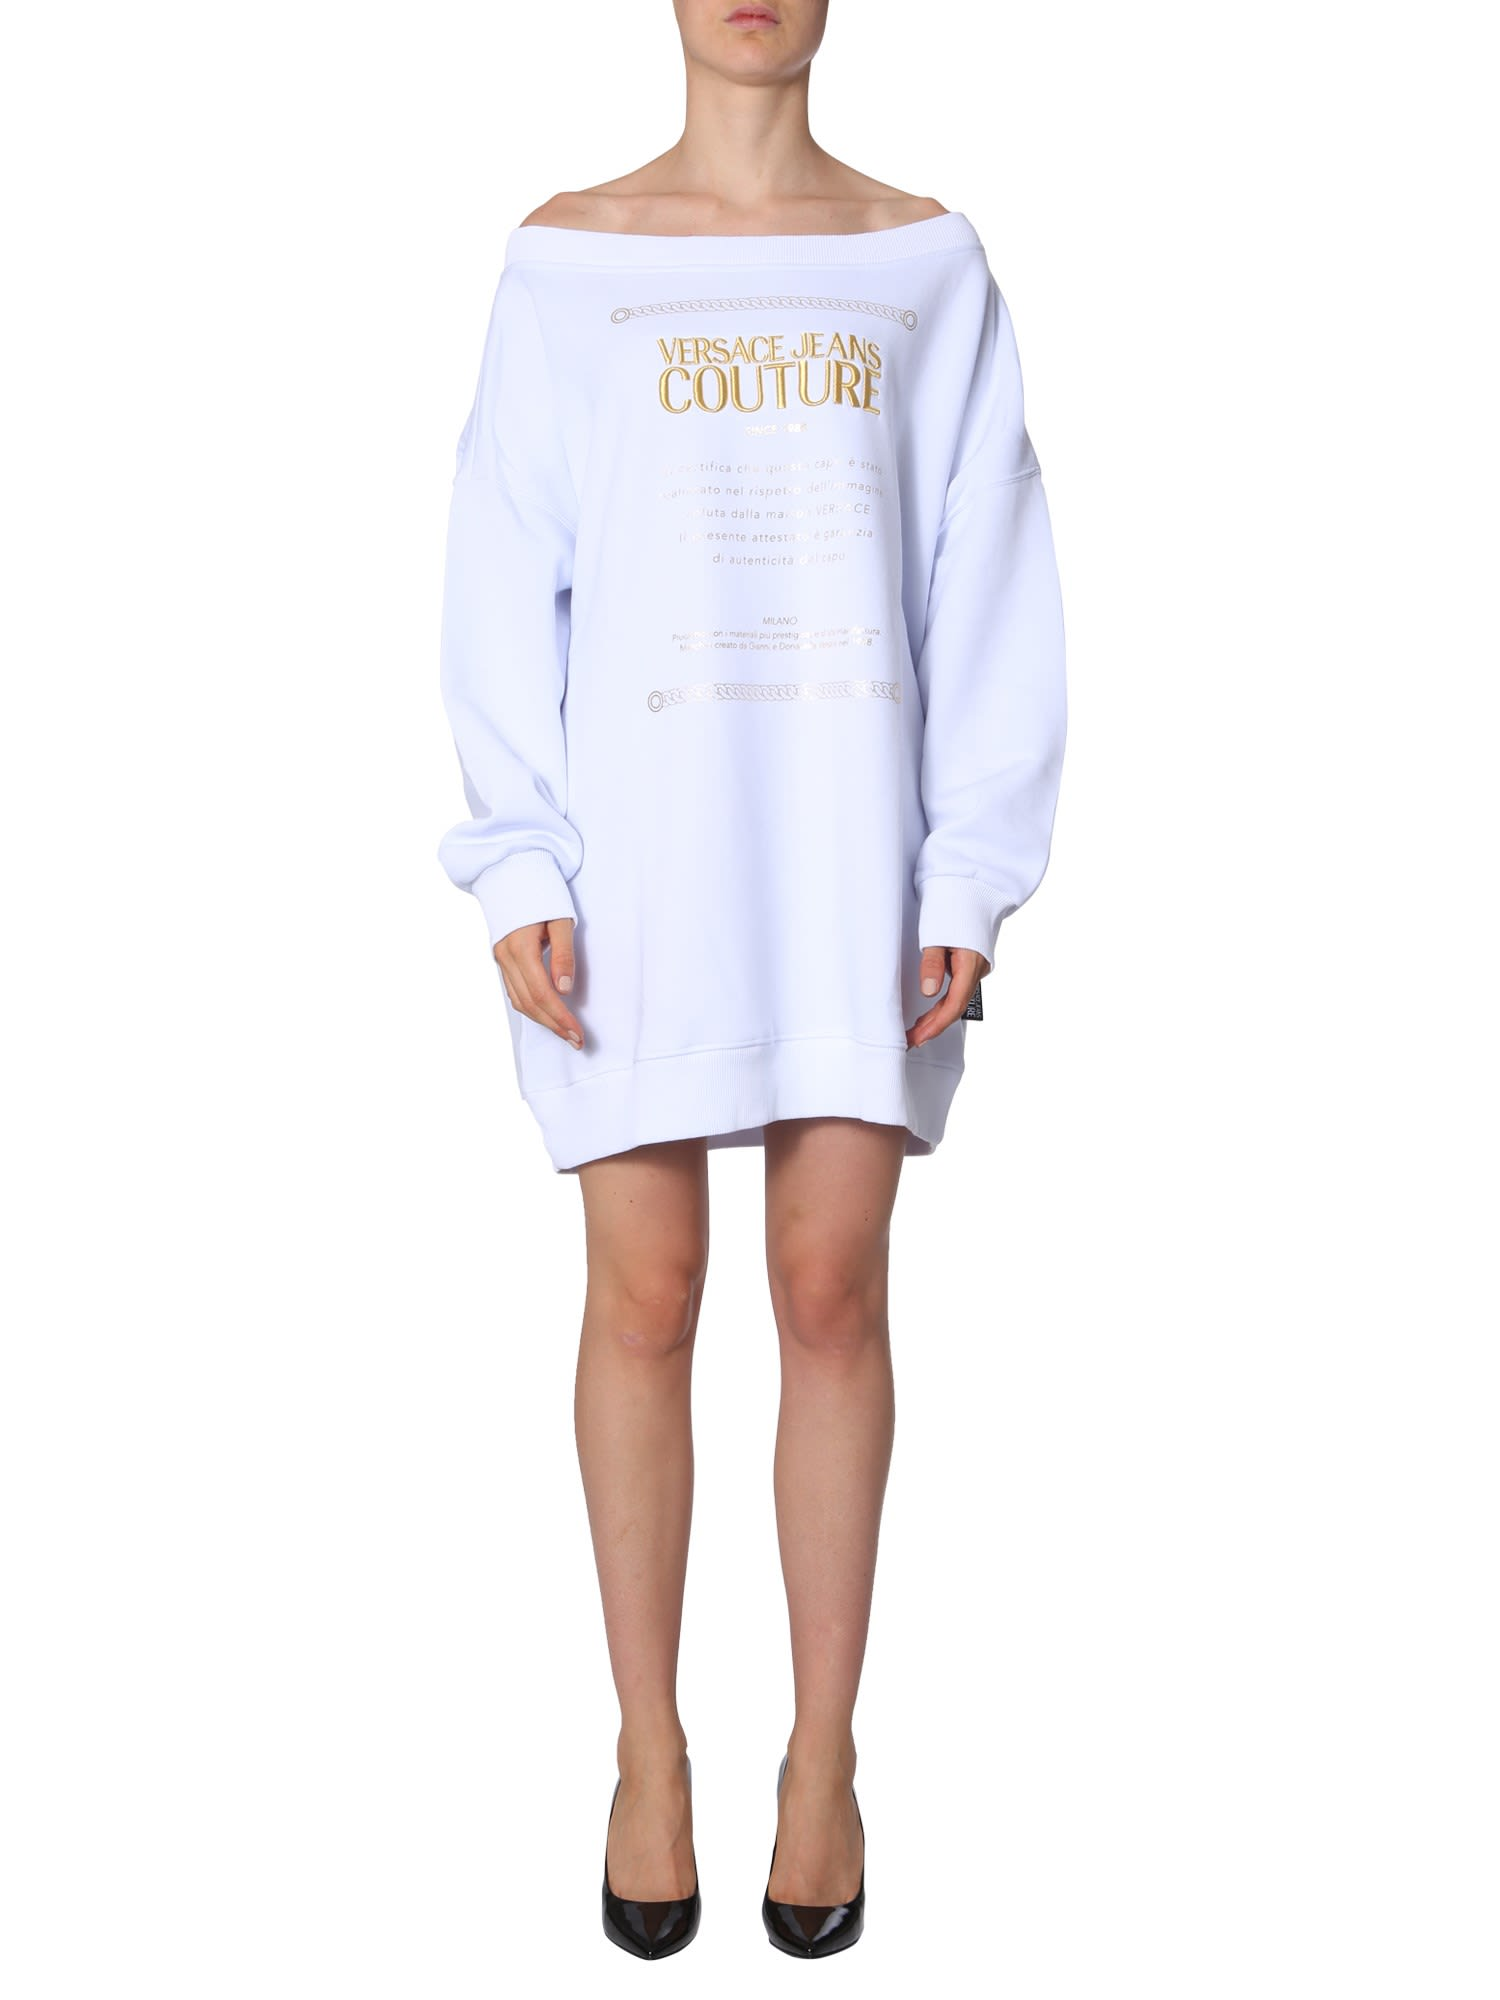 Versace Jeans Couture Cotton Sweatshirt Dress